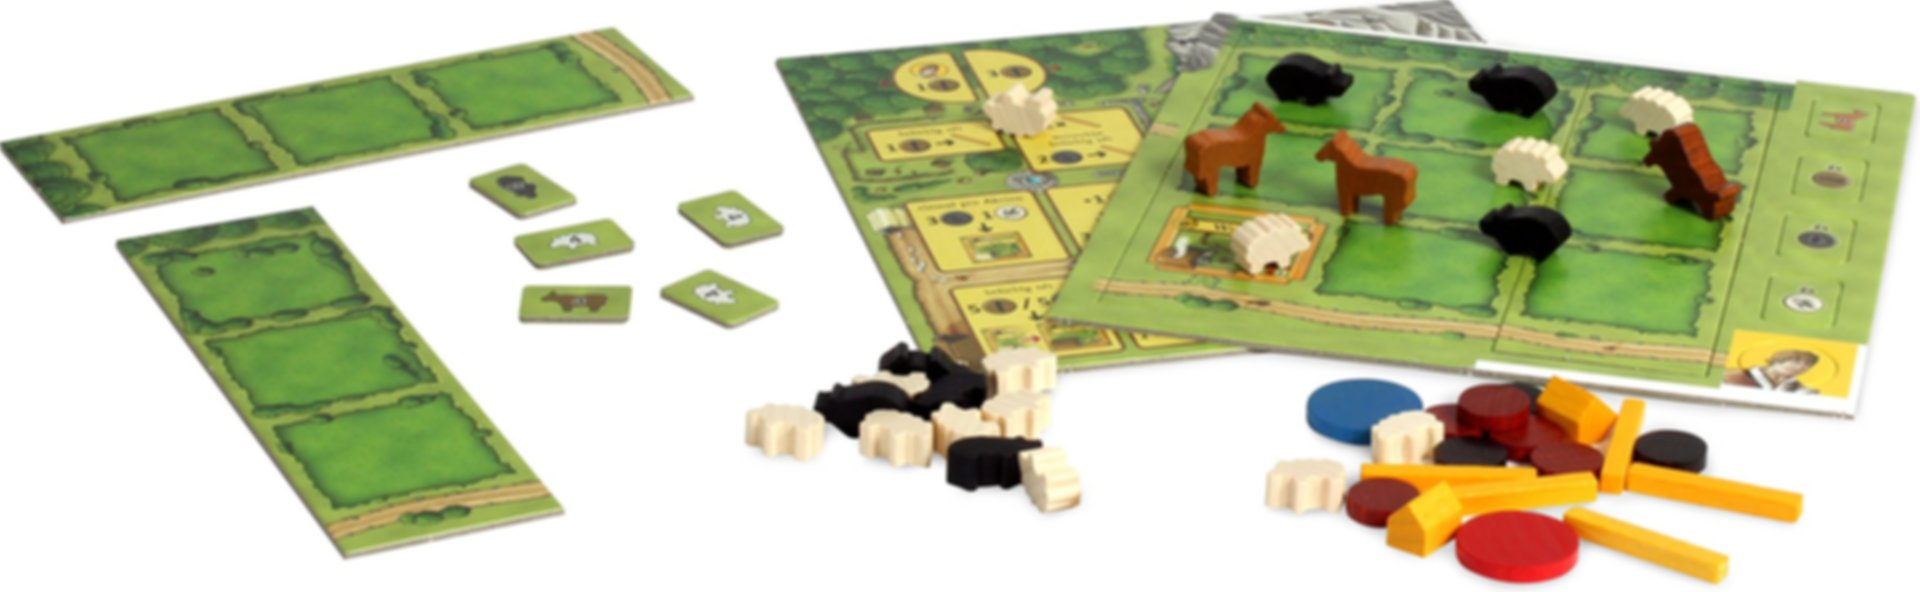 Agricola: All Creatures Big and Small components